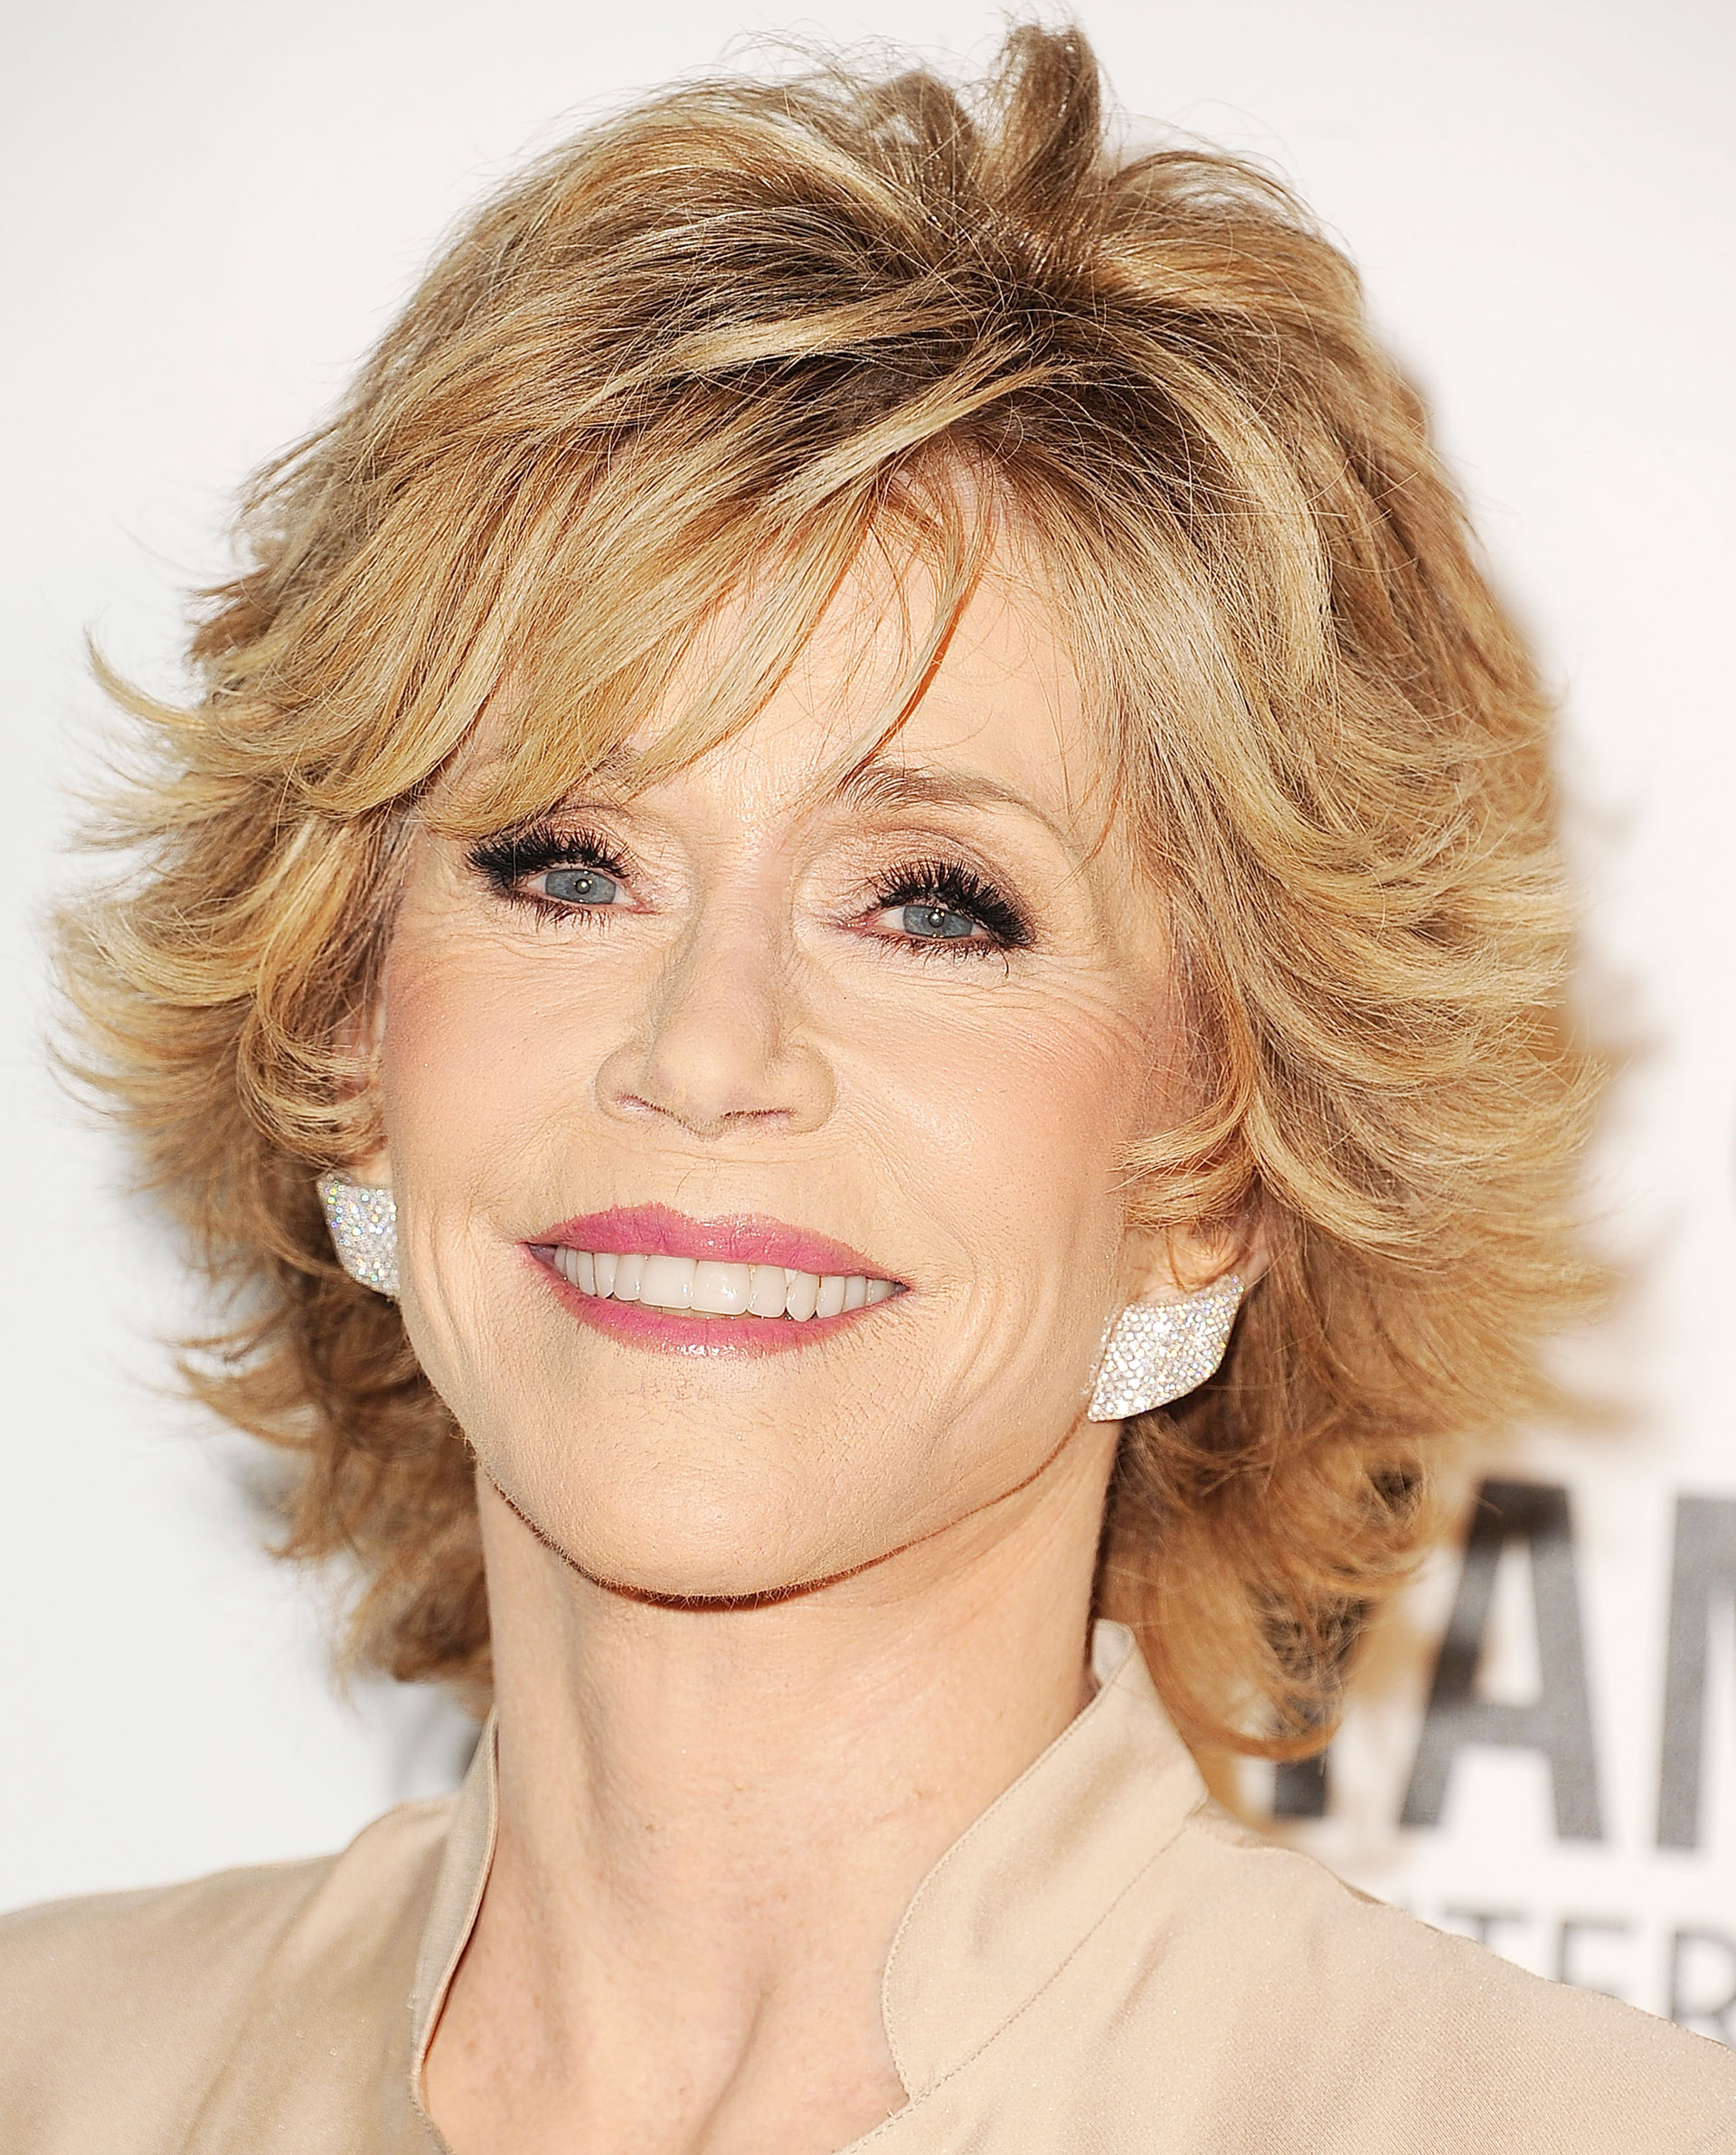 Remarkable Best Hairstyles For Women Over 50 Celebrity Haircuts Over 50 Short Hairstyles Gunalazisus